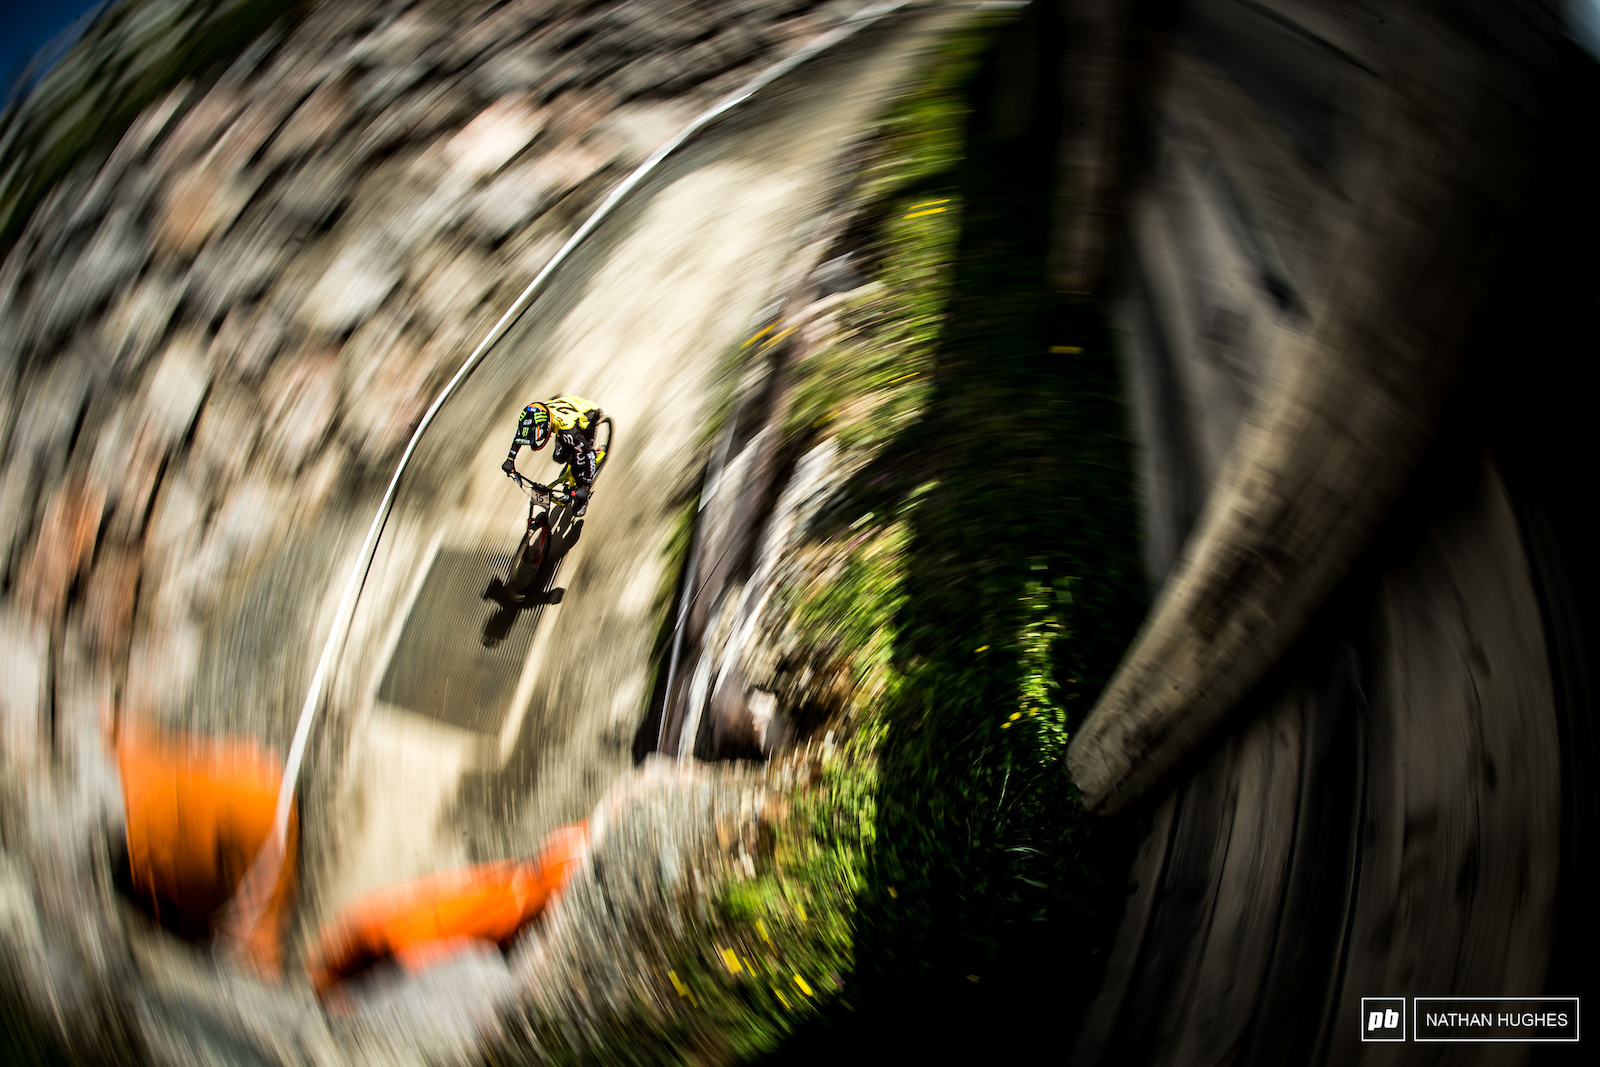 Connor Fearon in a speed spiral entering tunnel 1.